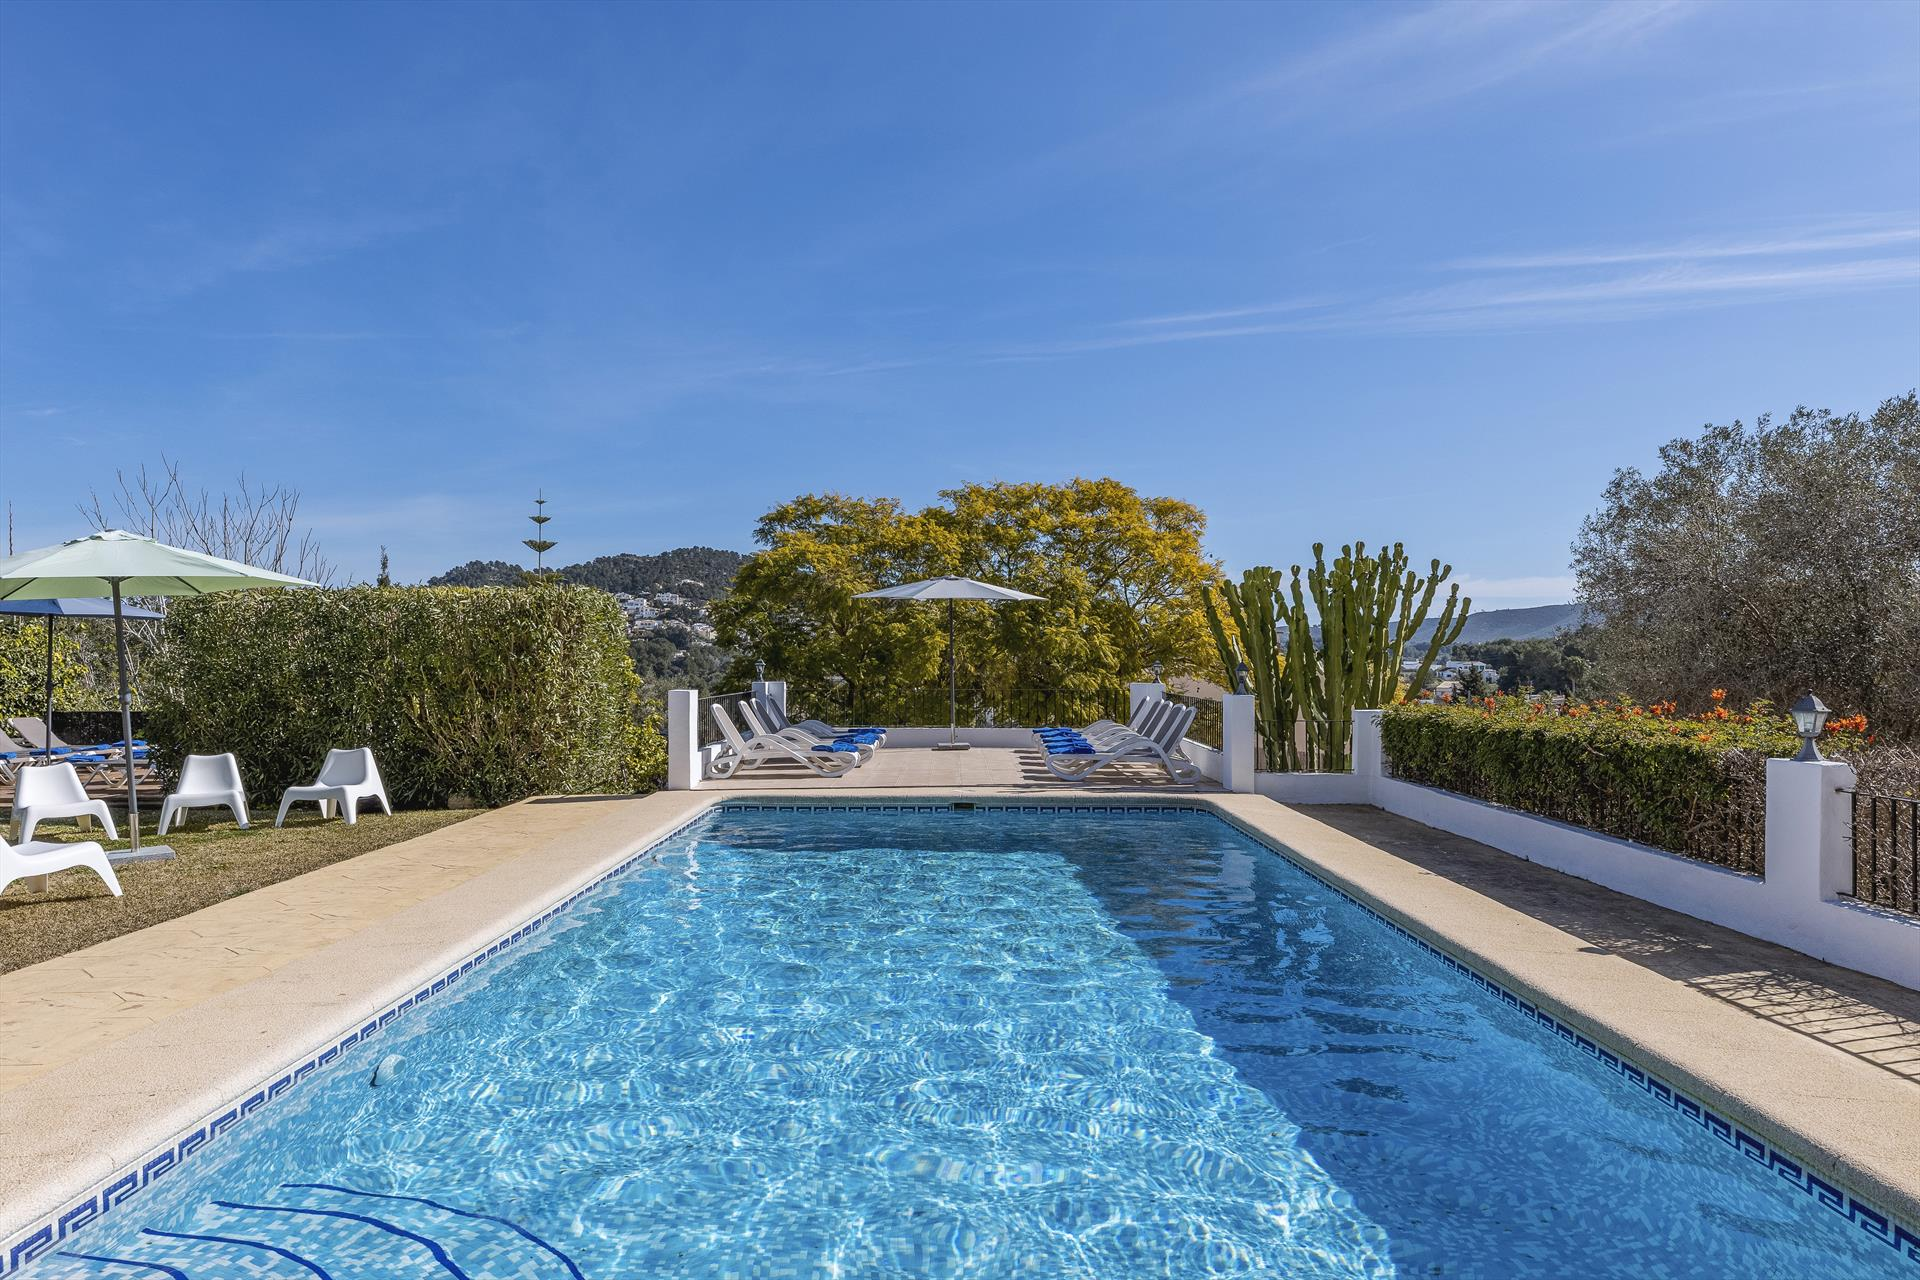 Casa Rosalia 18 pax, Large and comfortable villa  with private pool in Javea, on the Costa Blanca, Spain for 18 persons.....